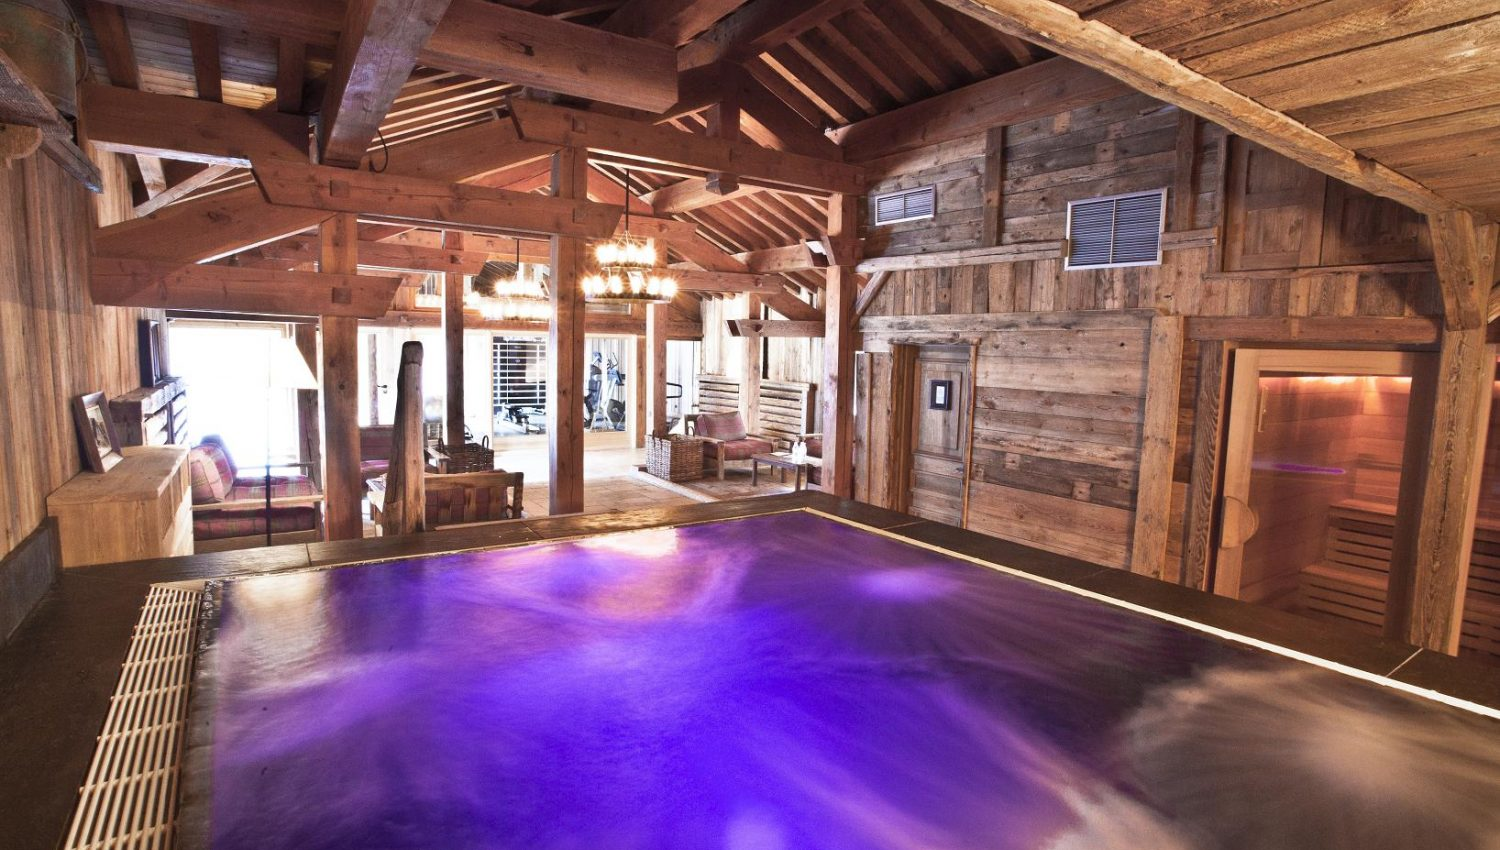 val-d-isere-hotel-le-blizzard-3